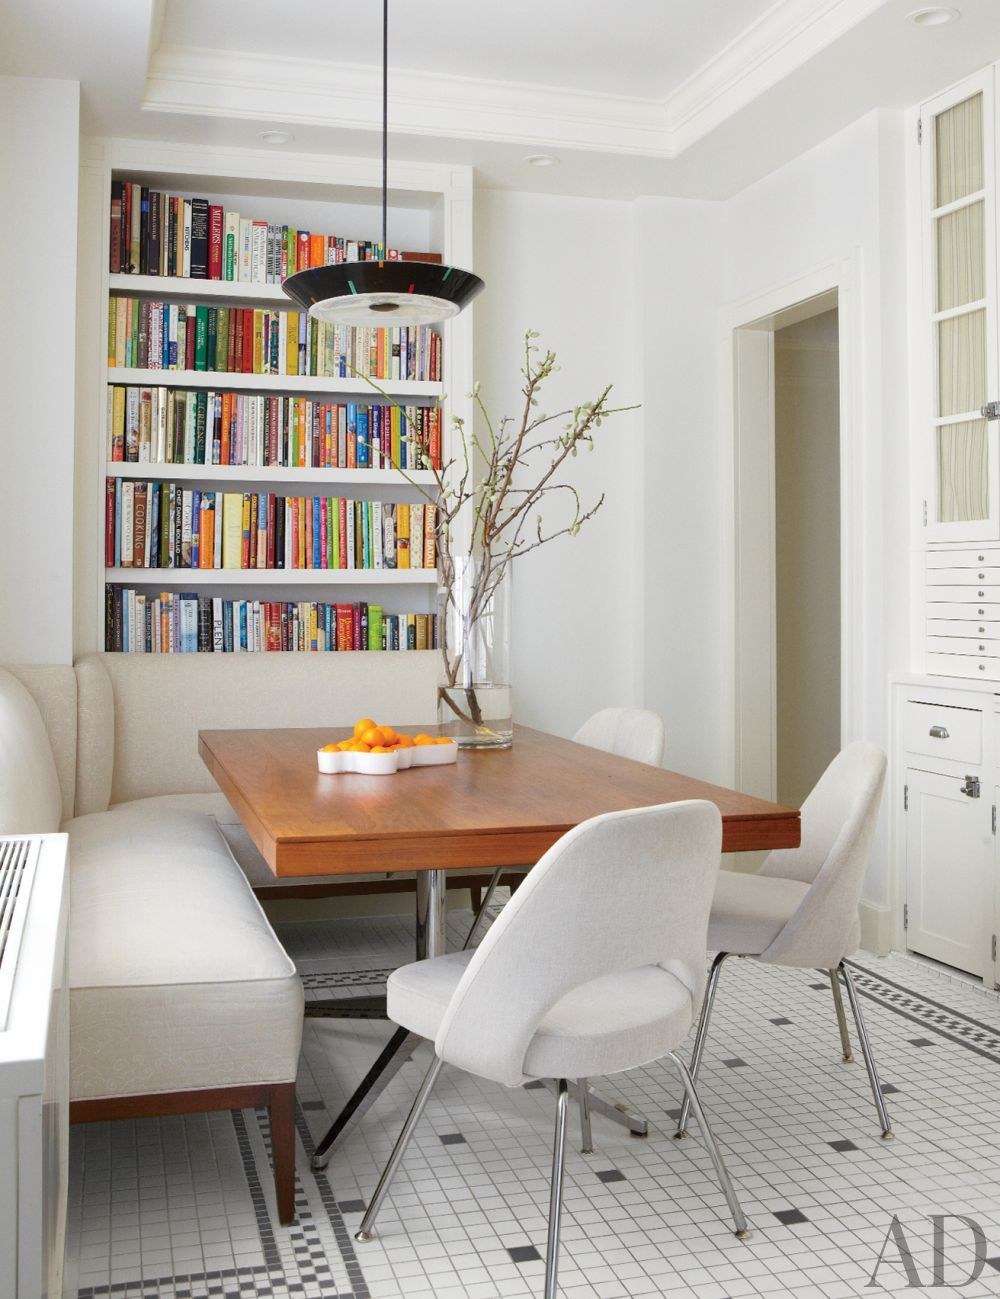 SEMI FINE DINING: Because Casual is Cool | Dining nook, Cozy winter ...